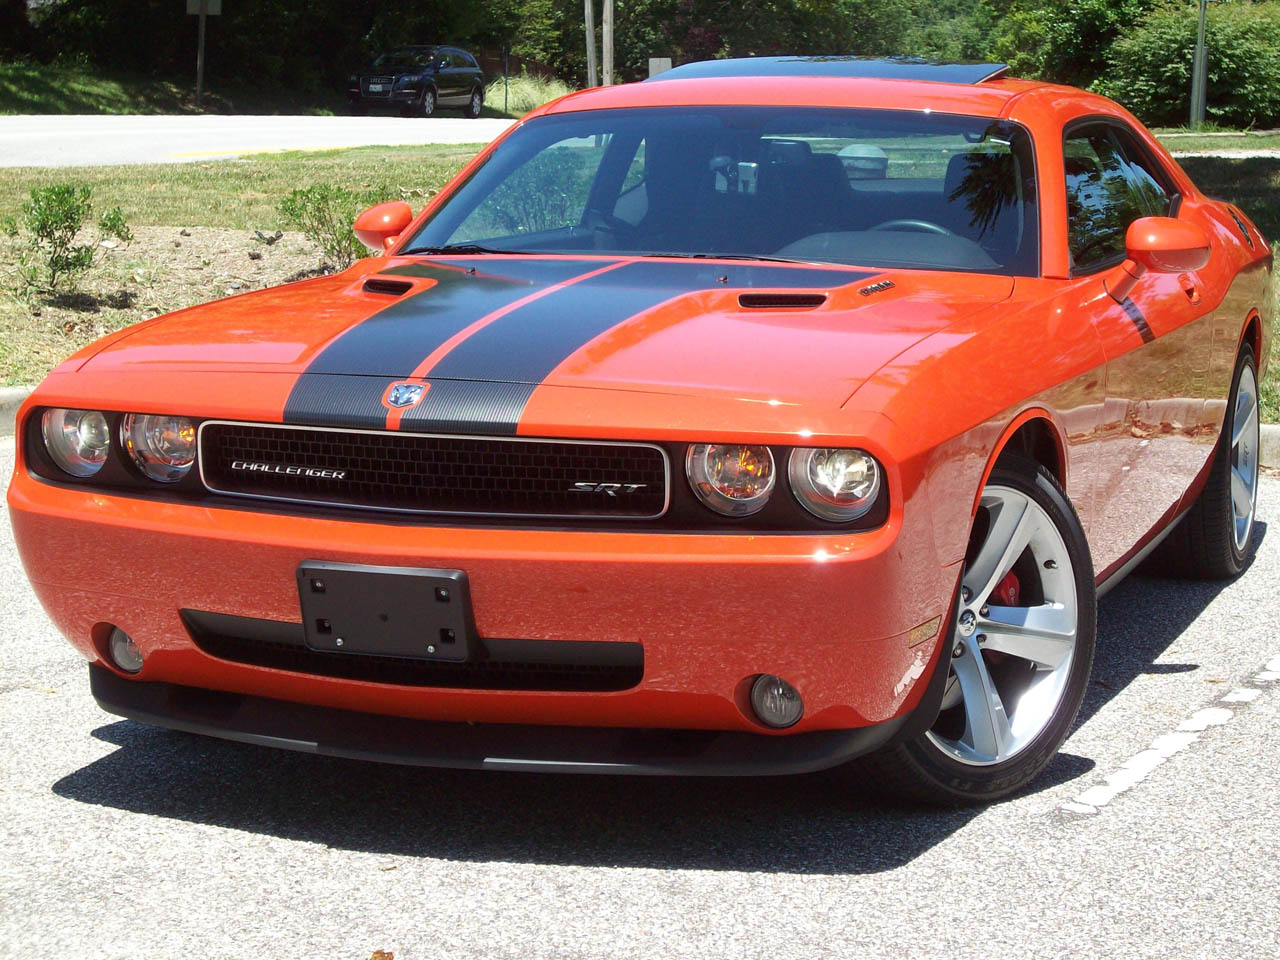 2009 dodge challenger srt8 srt8 1 4 mile drag racing timeslip specs 0. Cars Review. Best American Auto & Cars Review